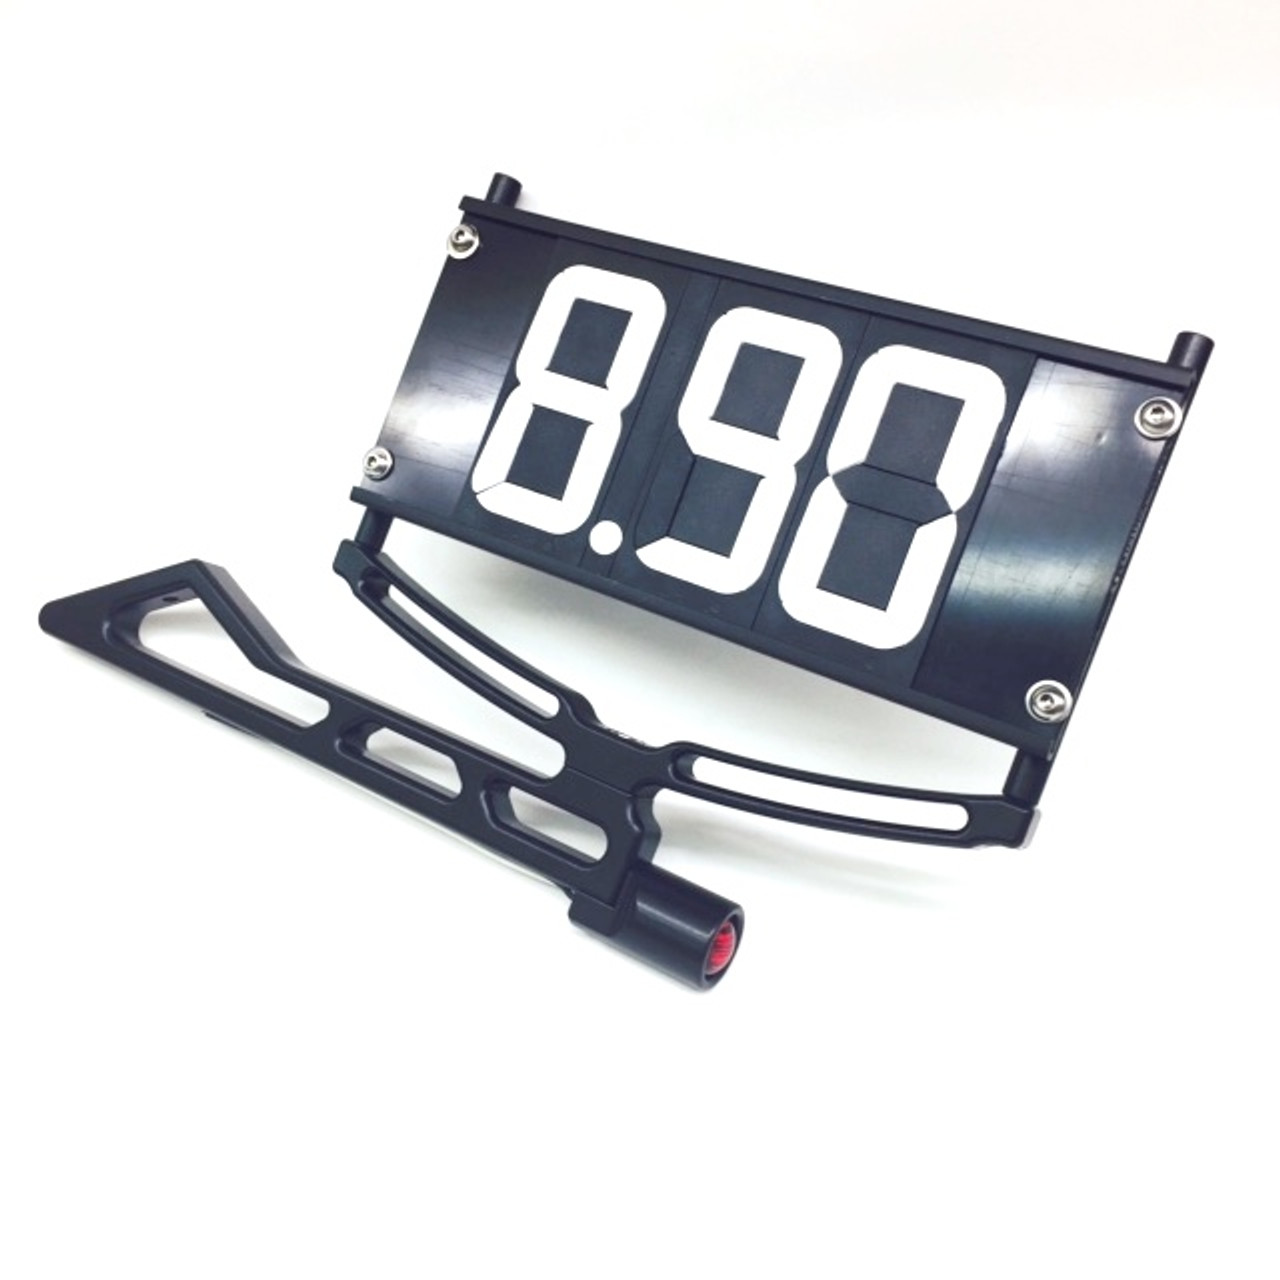 Black Dragster Dial In Board Bracket - Flip-A-Dial & Tail Light